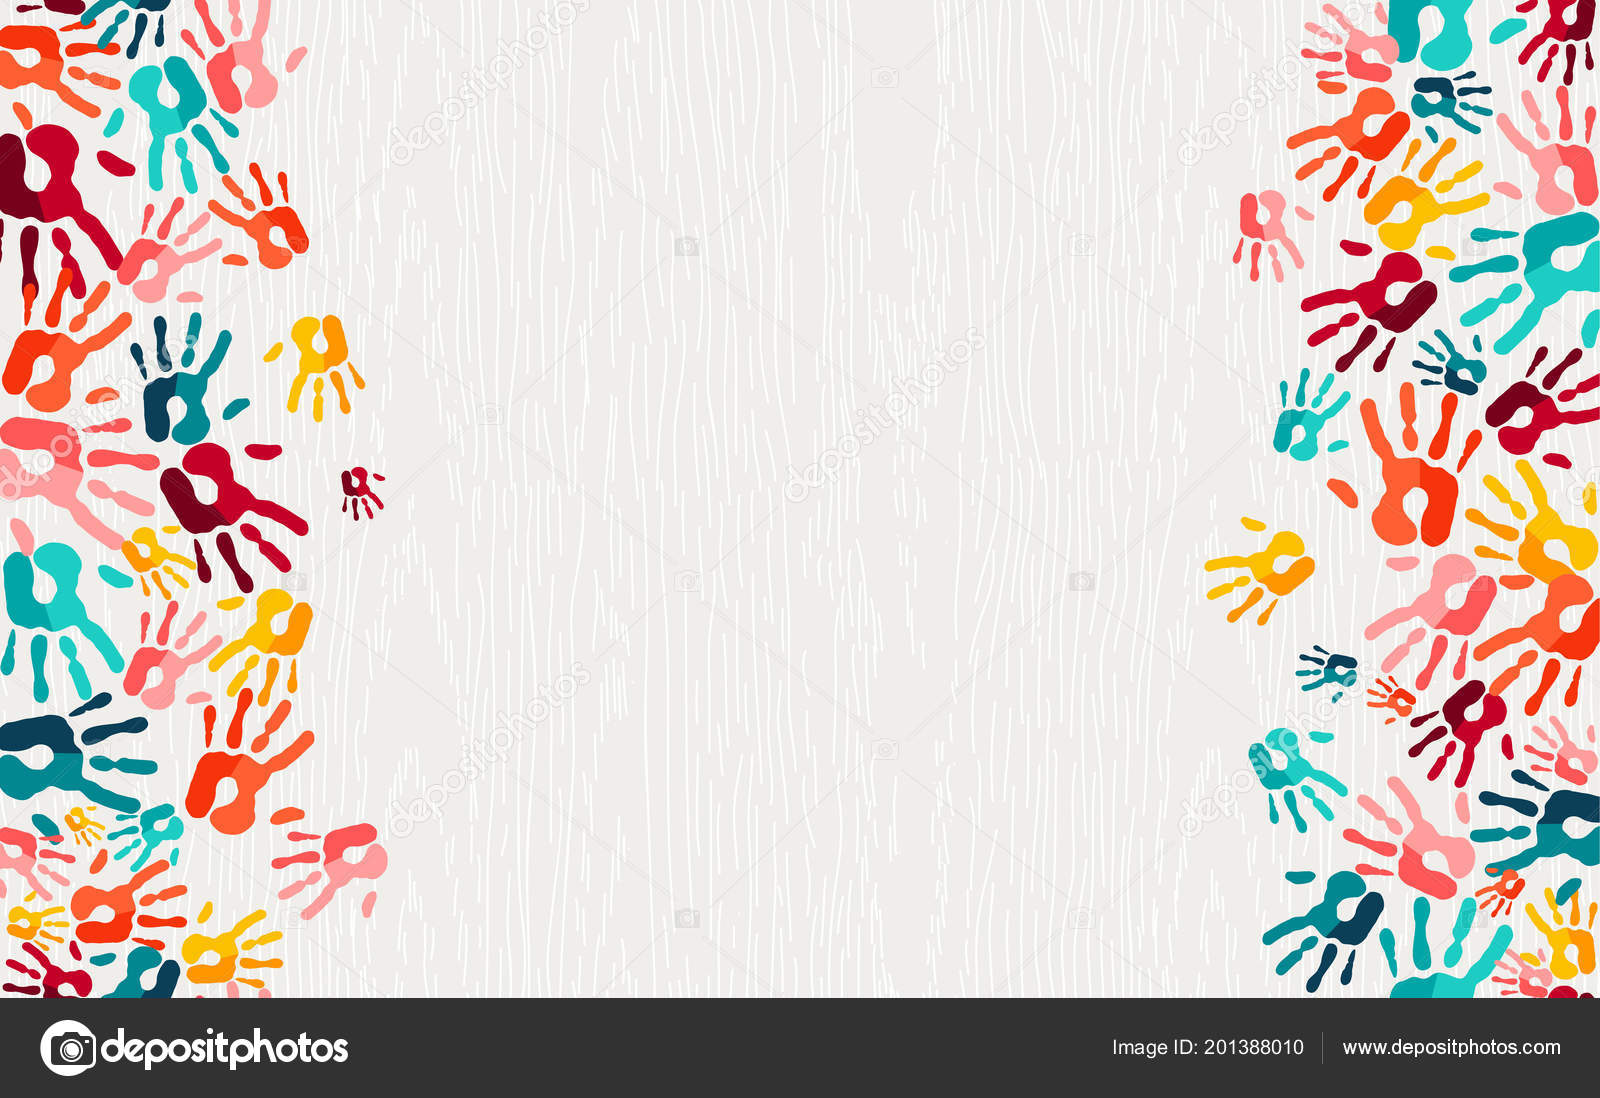 Color Handprint Background Concept Human Hand Print